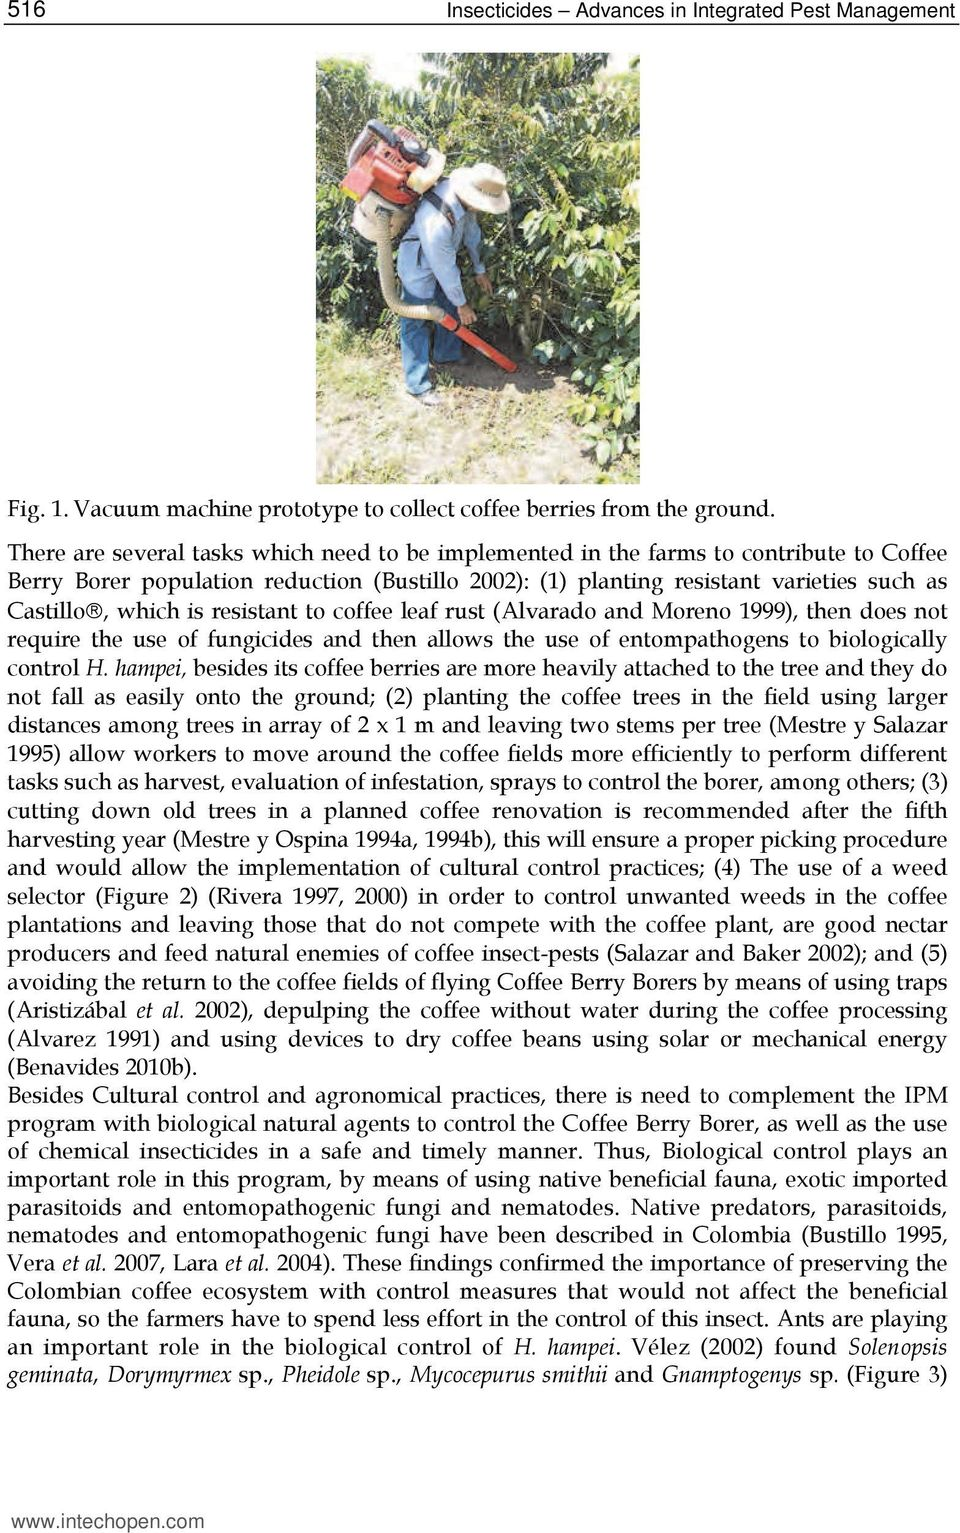 resistant to coffee leaf rust (Alvarado and Moreno 1999), then does not require the use of fungicides and then allows the use of entompathogens to biologically control H.